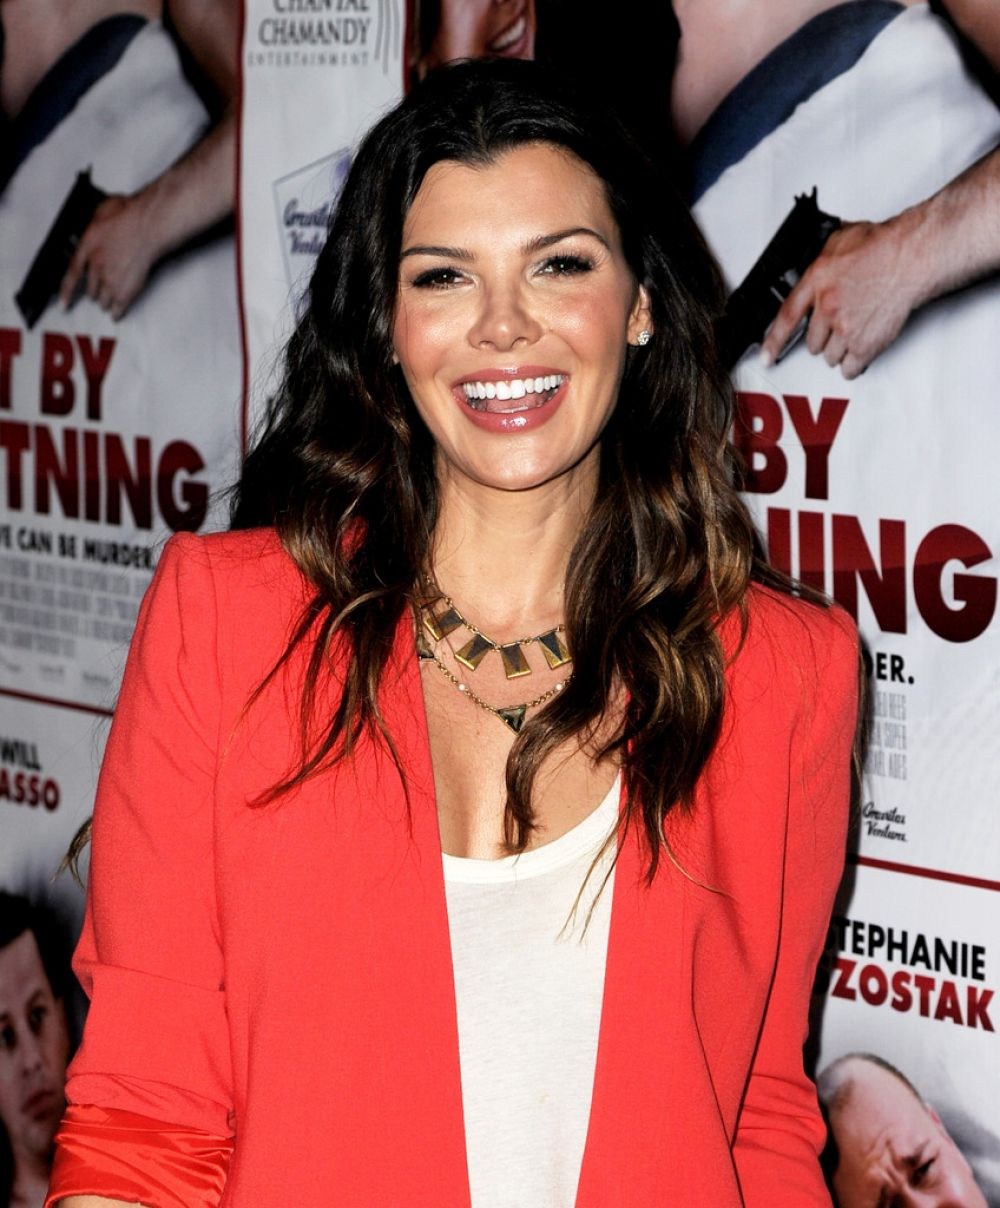 ALI LANDRY at Hit by Lightning Premiere in Los Angele